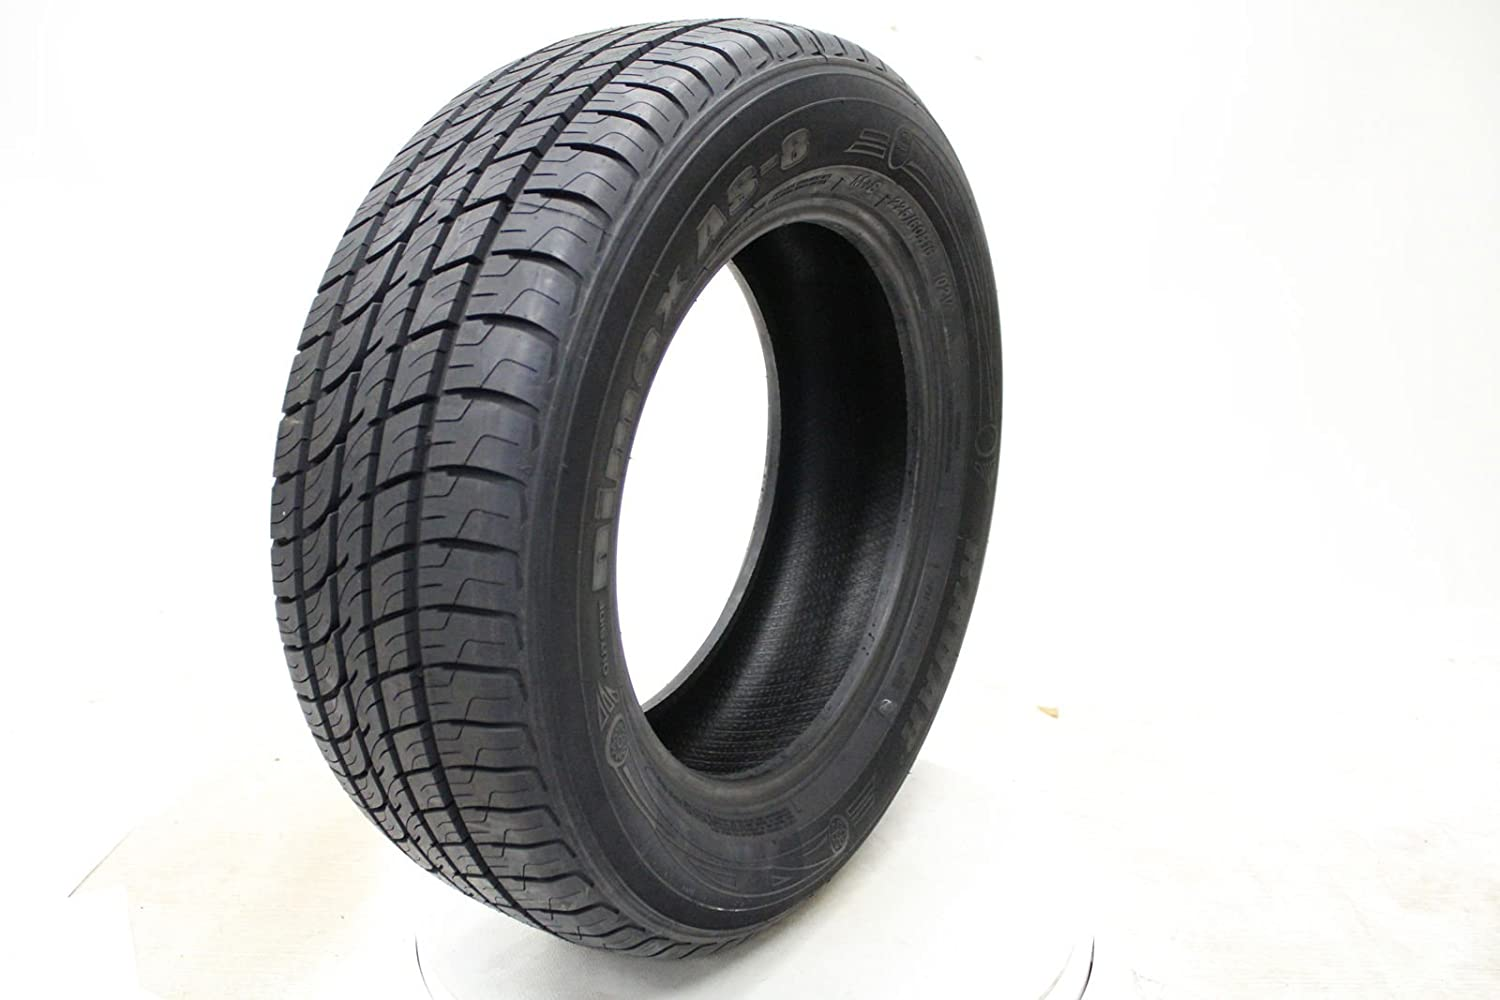 RADAR Dimax AS-8 All-Season Radial Tire-225/50R17 98W DSC0253